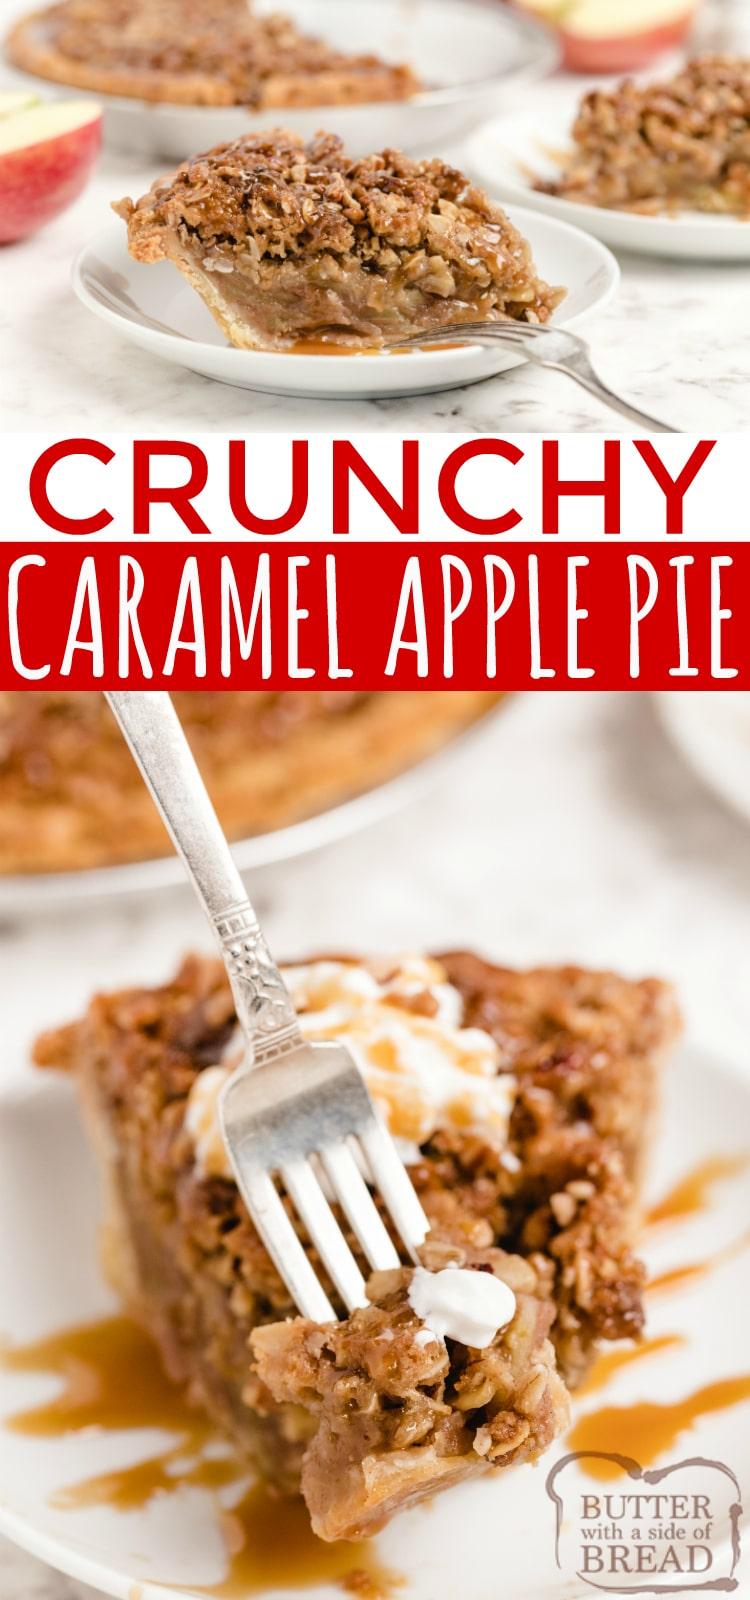 Crunchy Caramel Apple Pie made with a pre-made pie crust, filled with sliced apples and topped with a crunchy sweet streusel, pecans and caramel! Easy apple pie recipe topped with a buttery brown sugar and oat topping instead of a traditional pie crust.